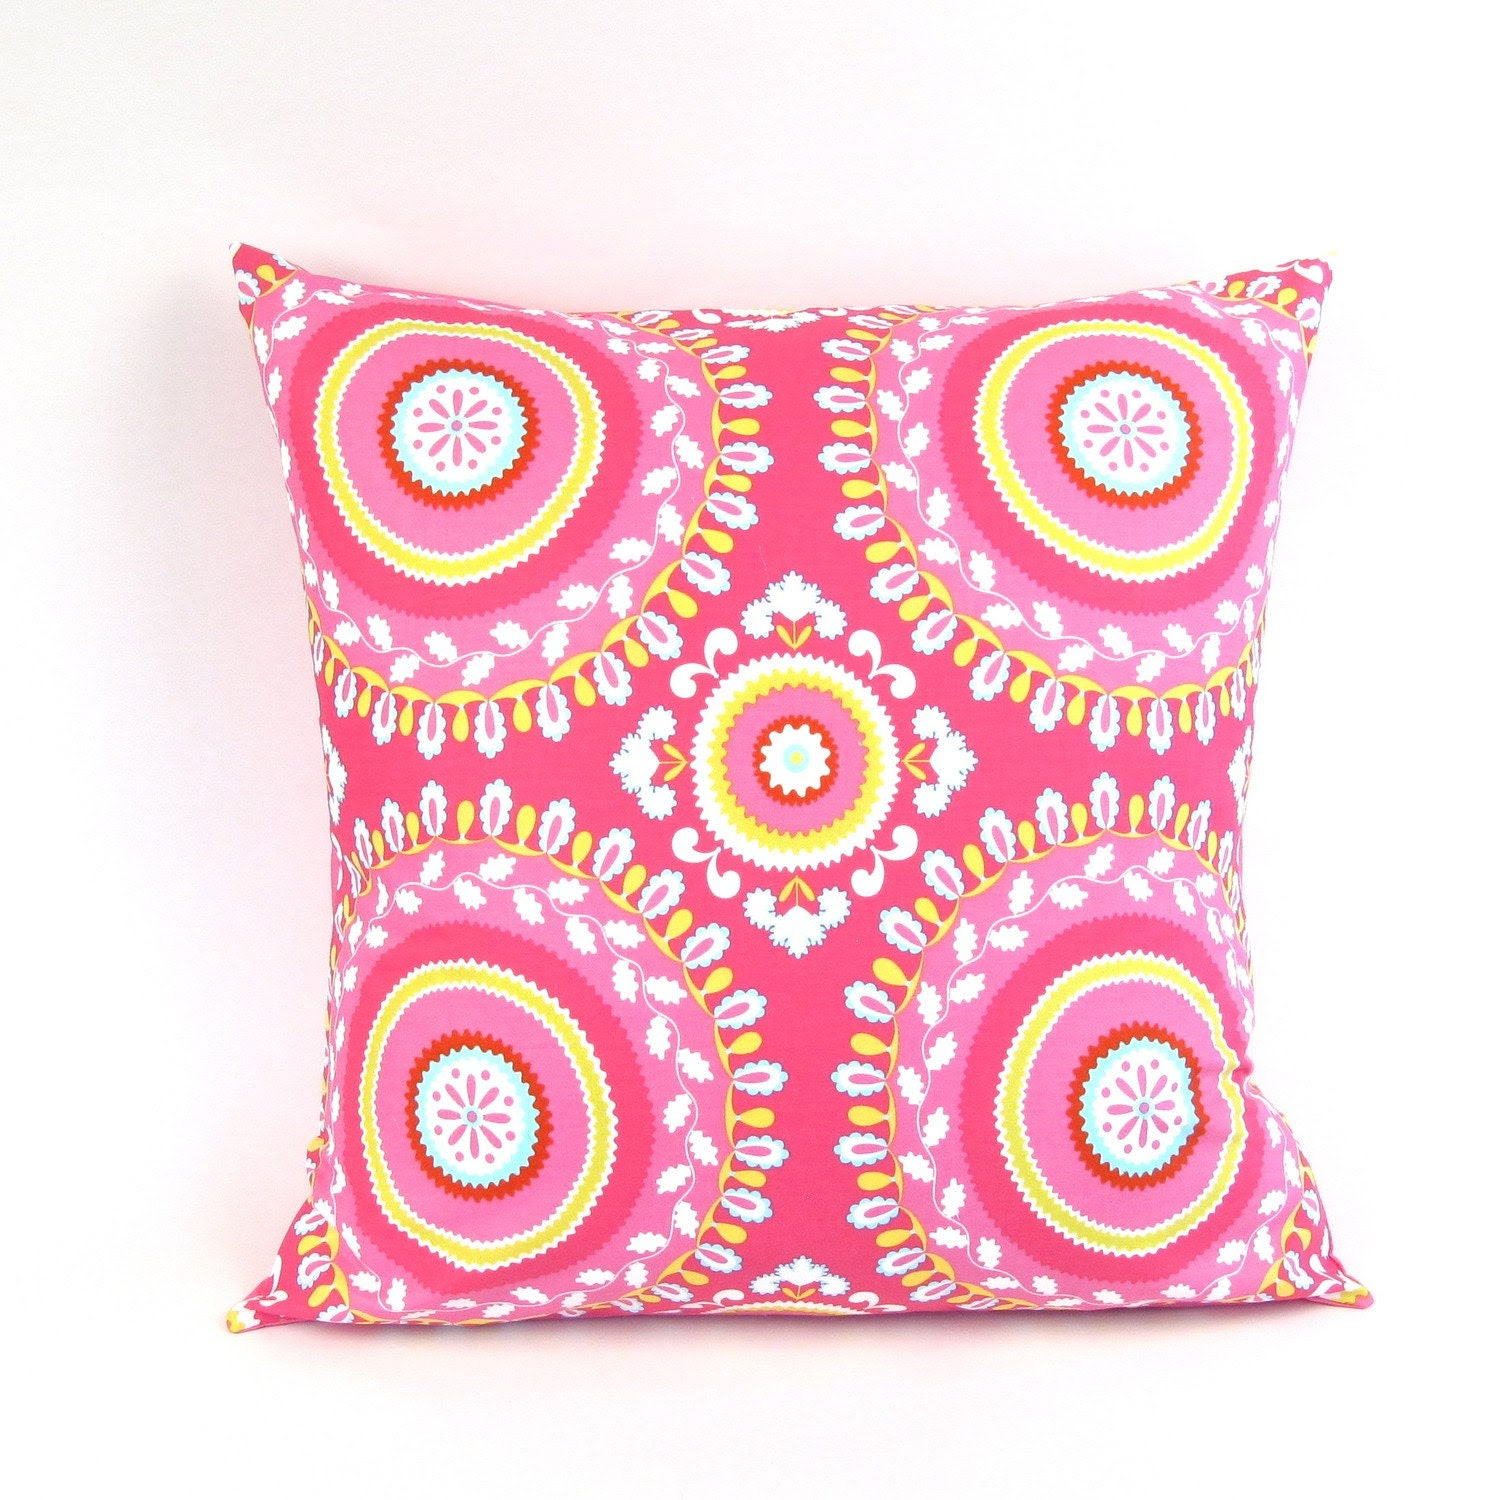 Bohemian Pillow Cover in Honeysuckle Pink 20 inch